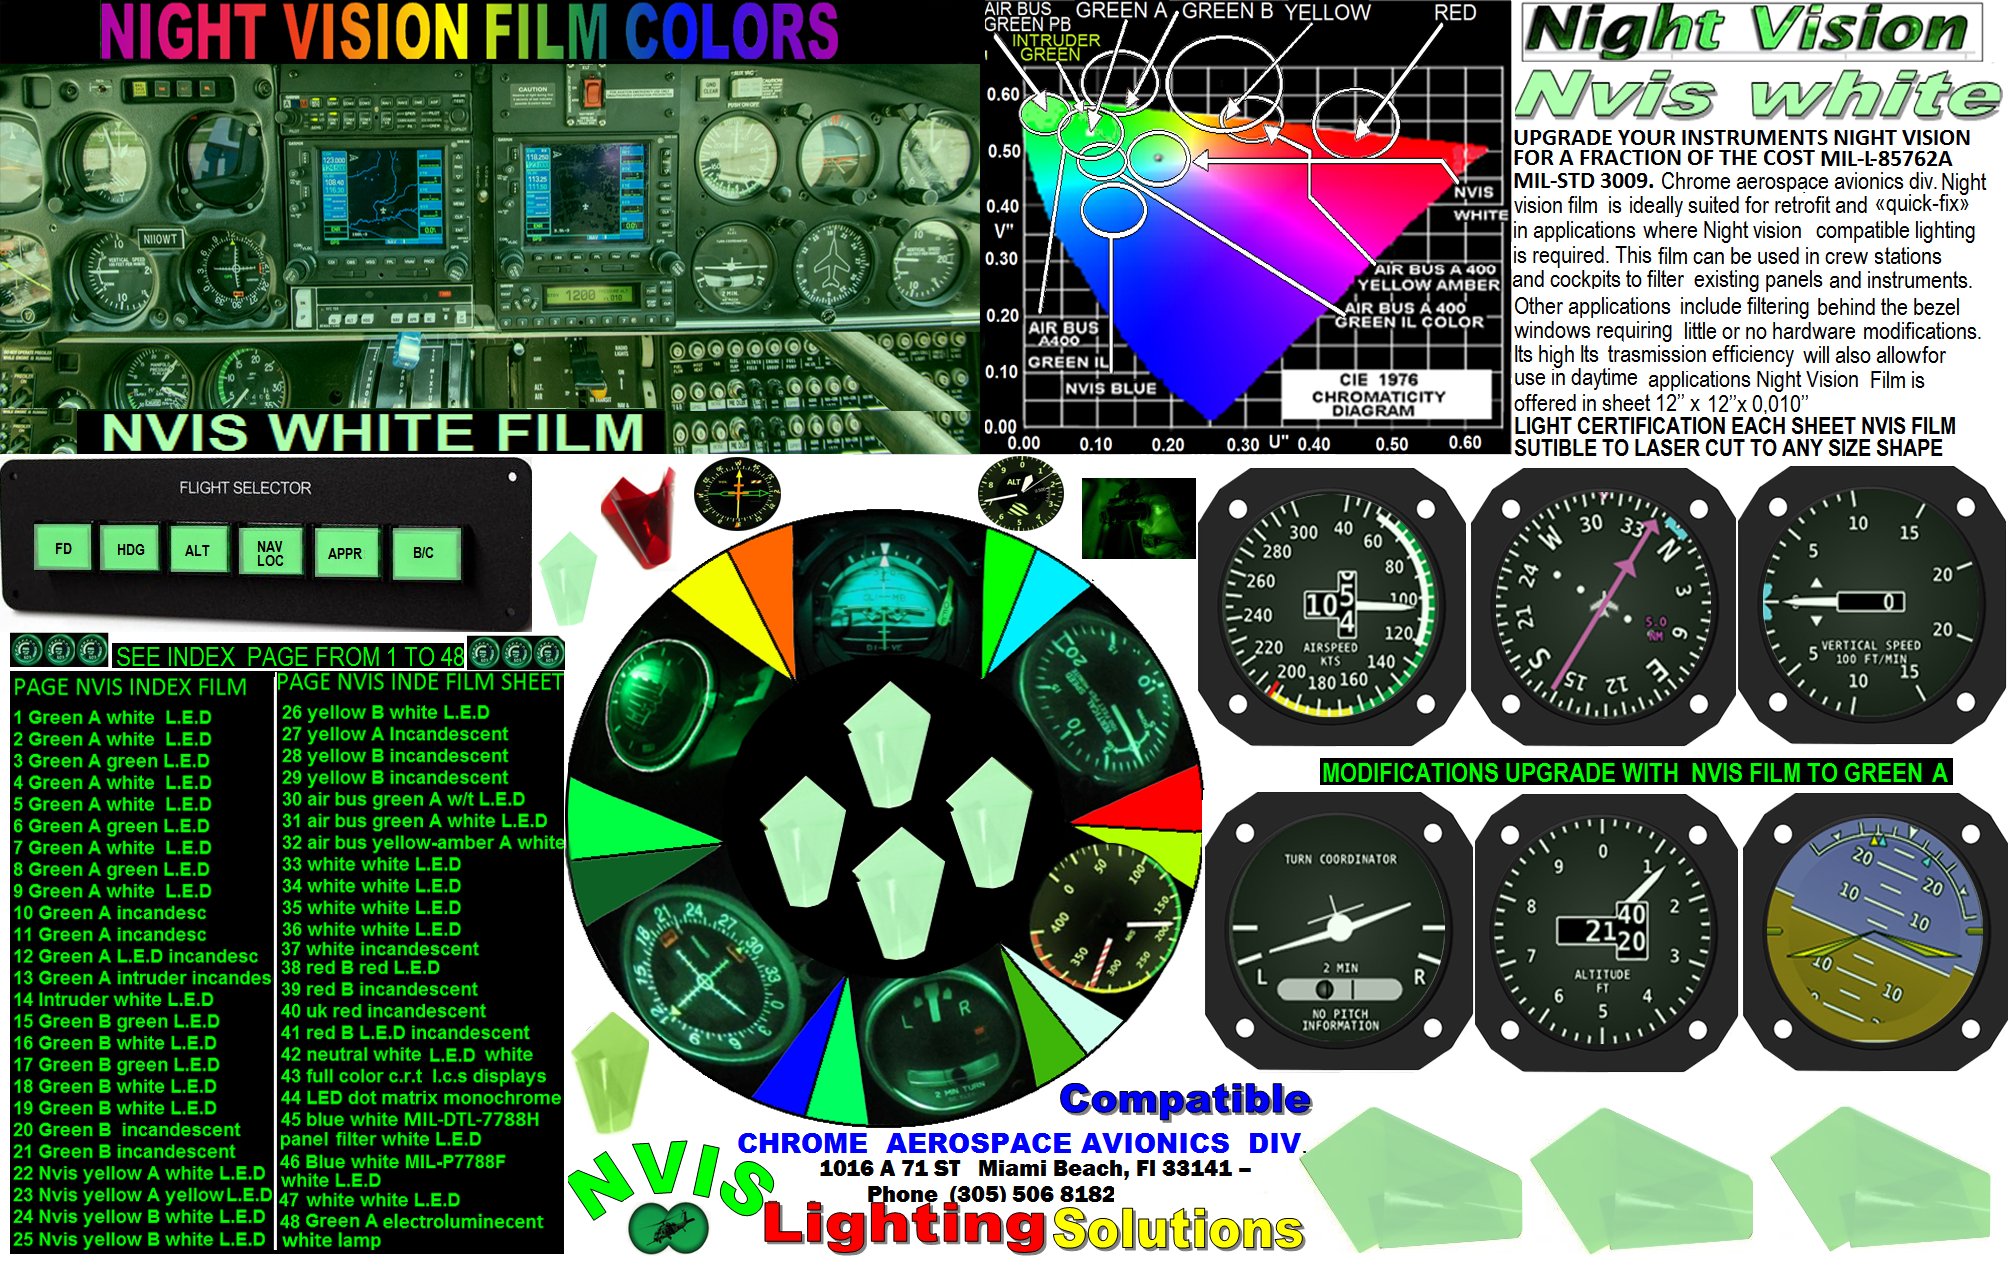 15 NVIS WHITE  FILM UPGRADE CONVERSION INSTRUMENTS   4-24-20.png